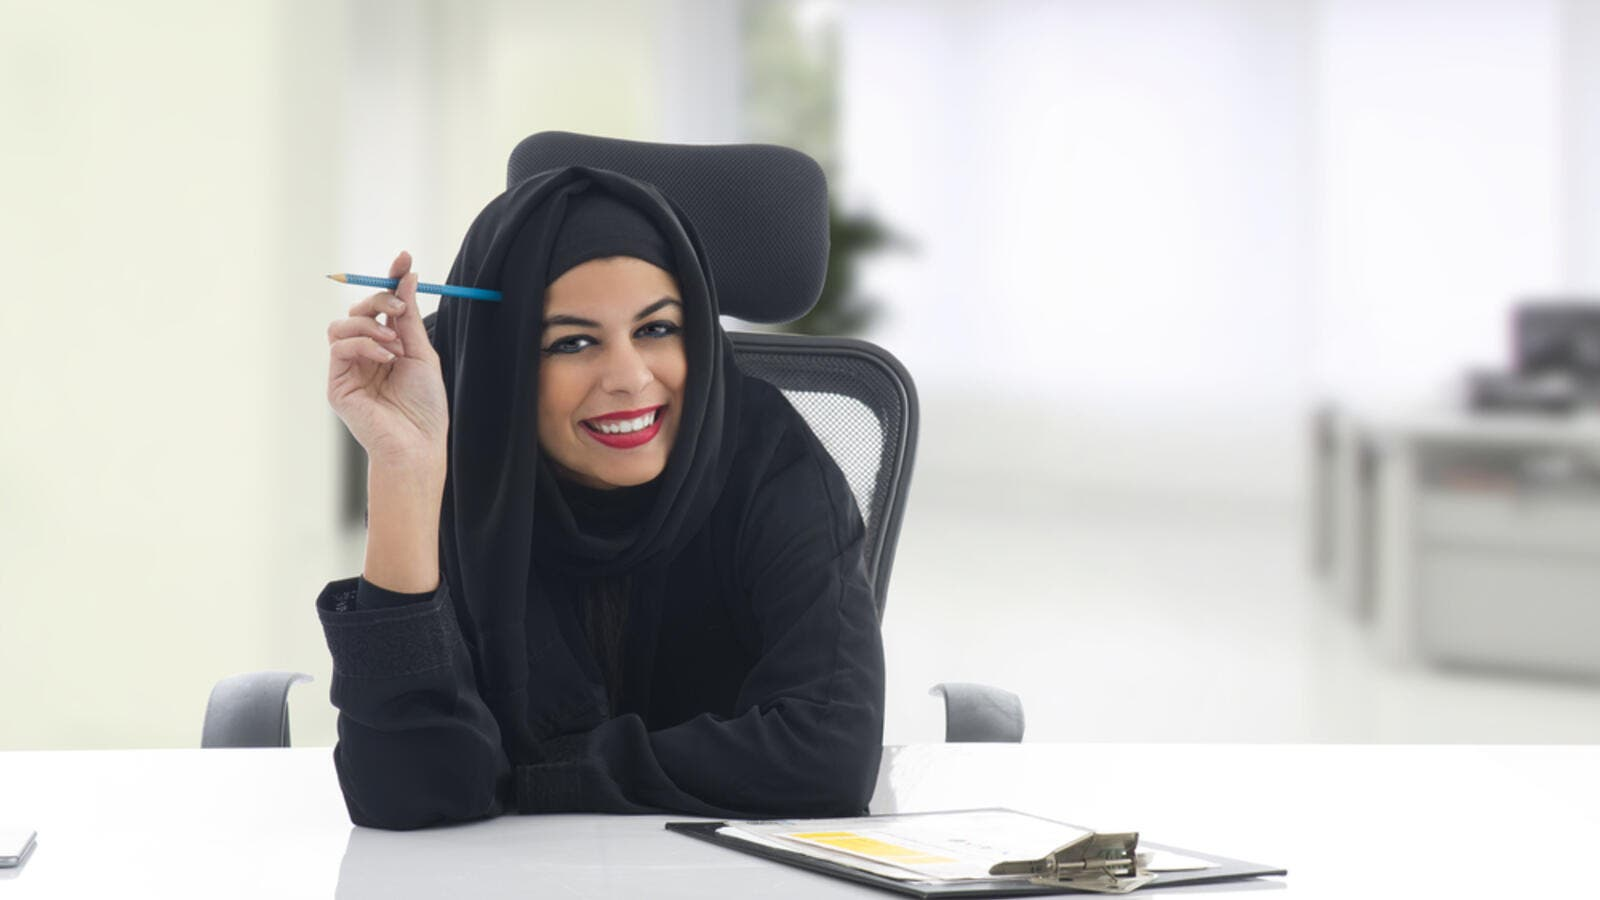 Nearly 40 percent of startups launched in Saudi Arabia in 2016 are owned by women (Shutterstock/File Photo)